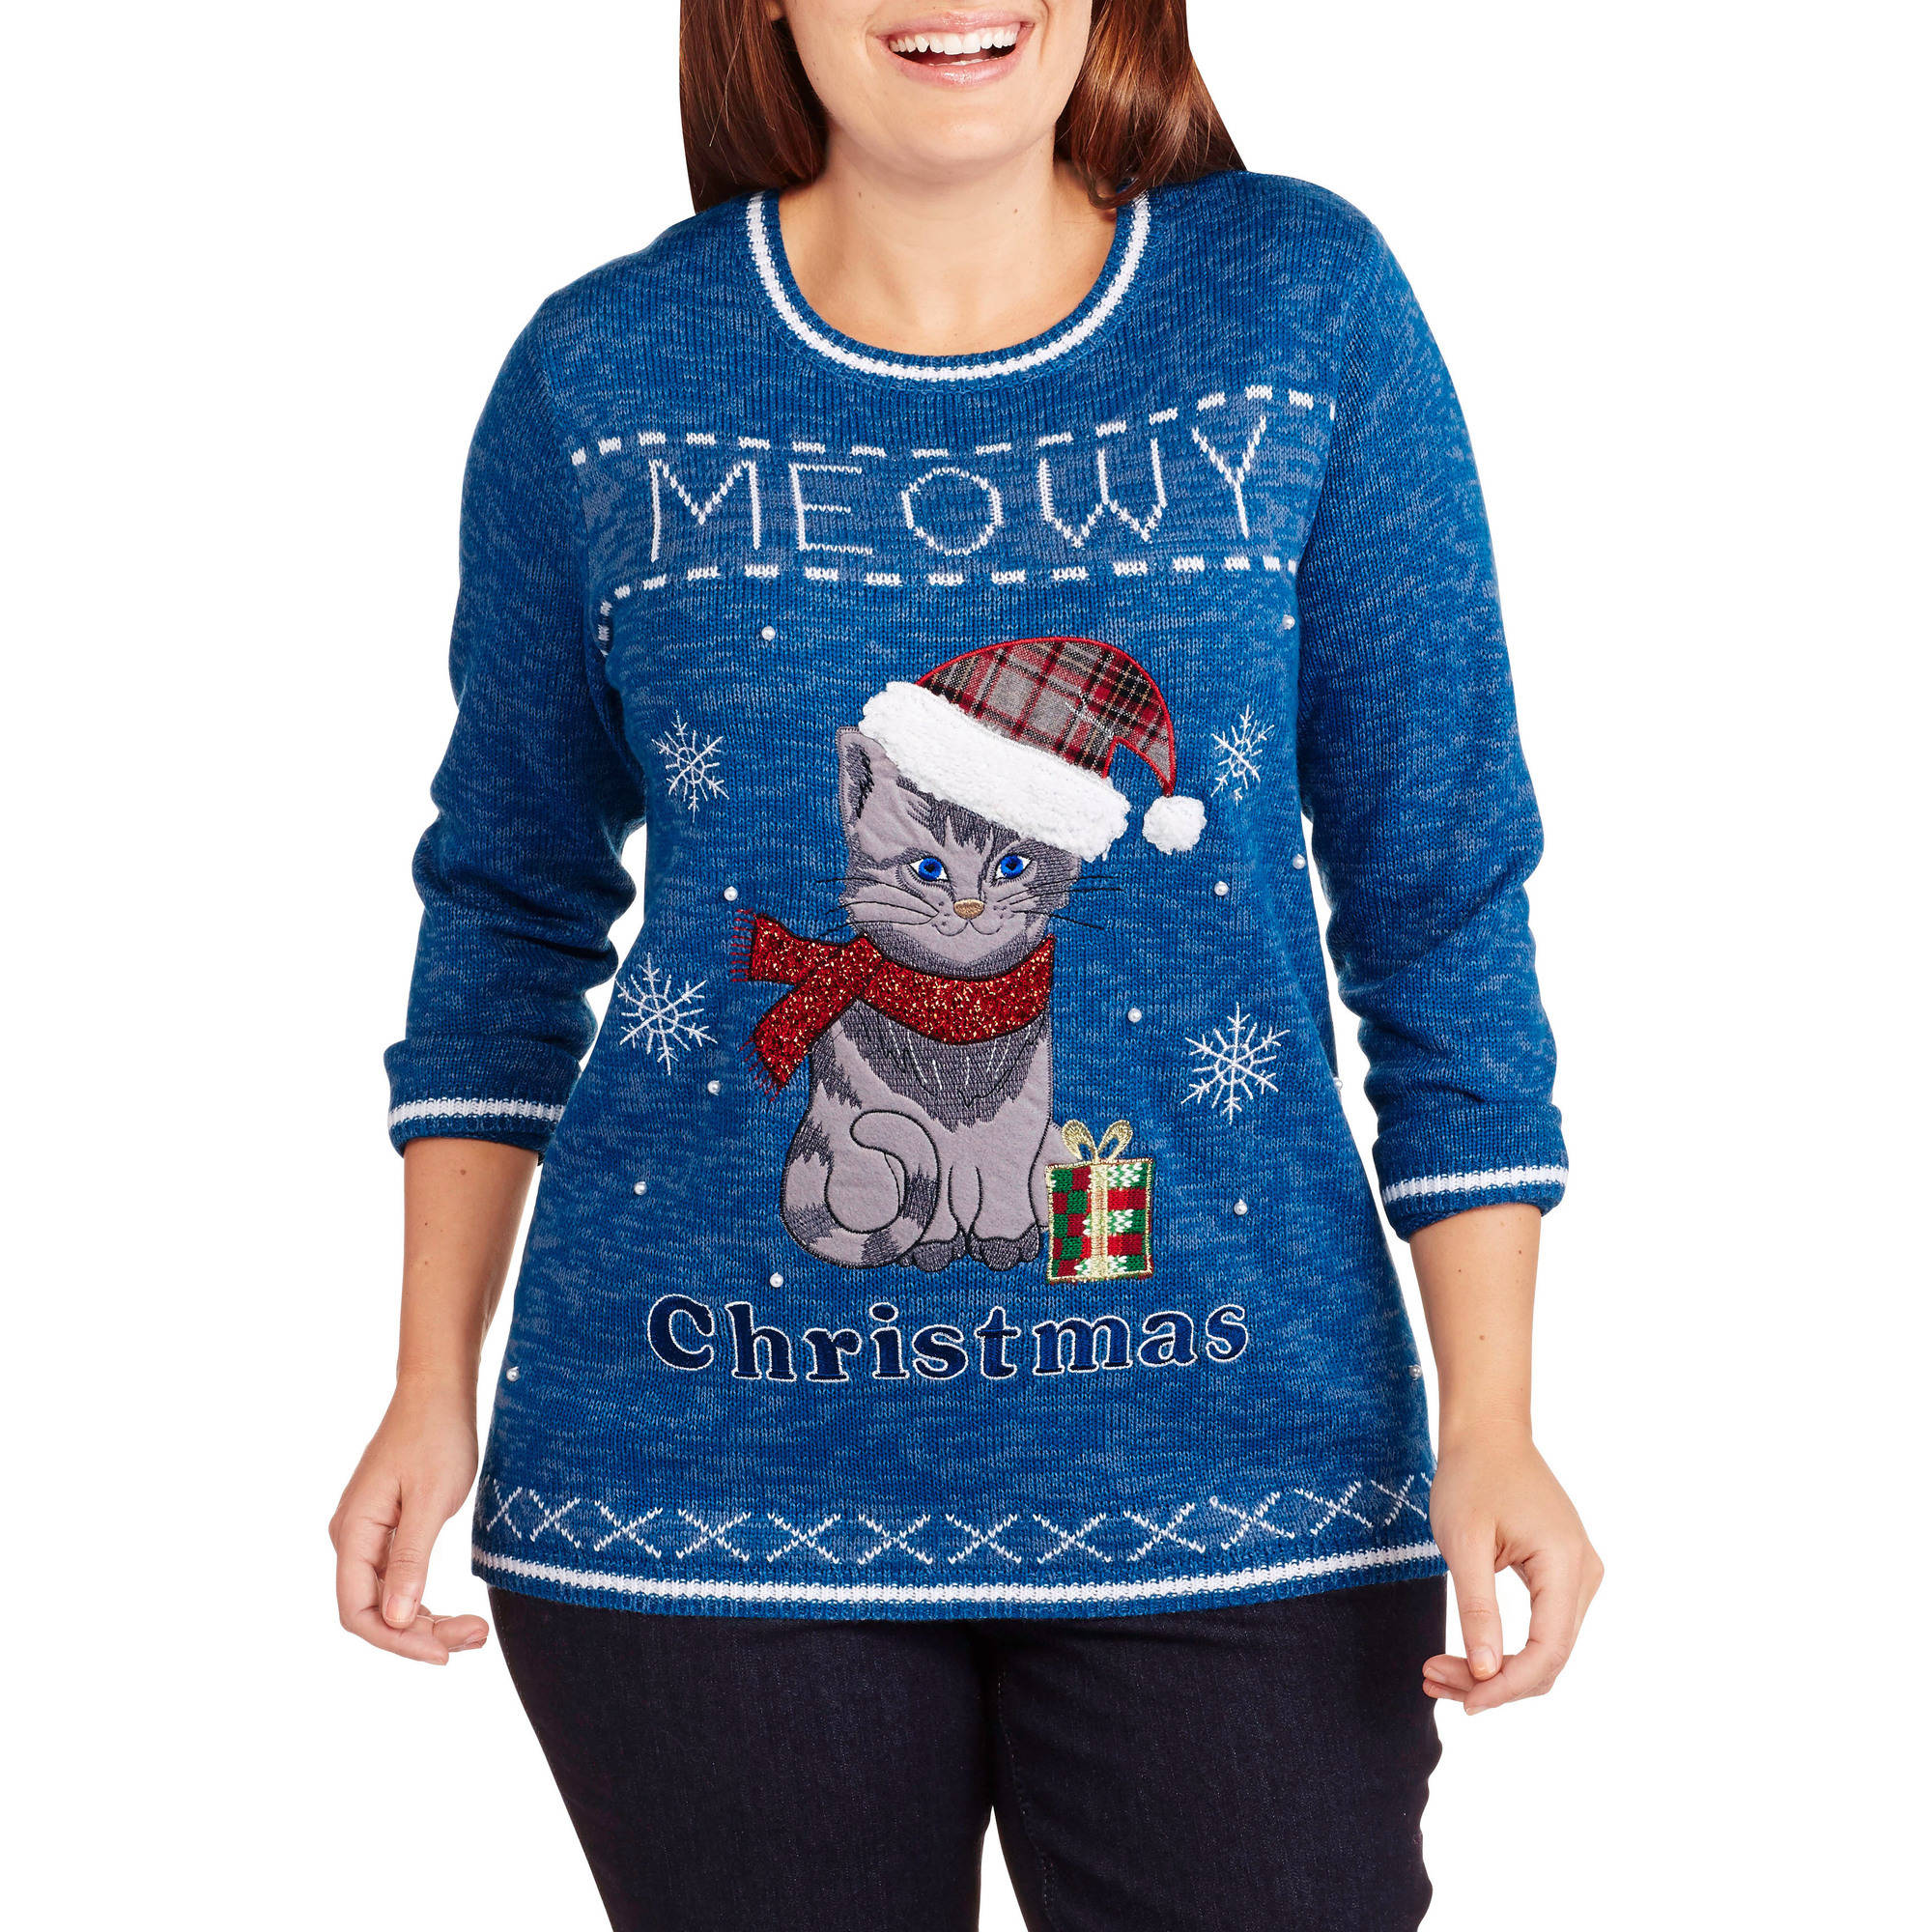 Walmart Christmas Sweater Plus Size | RLDM